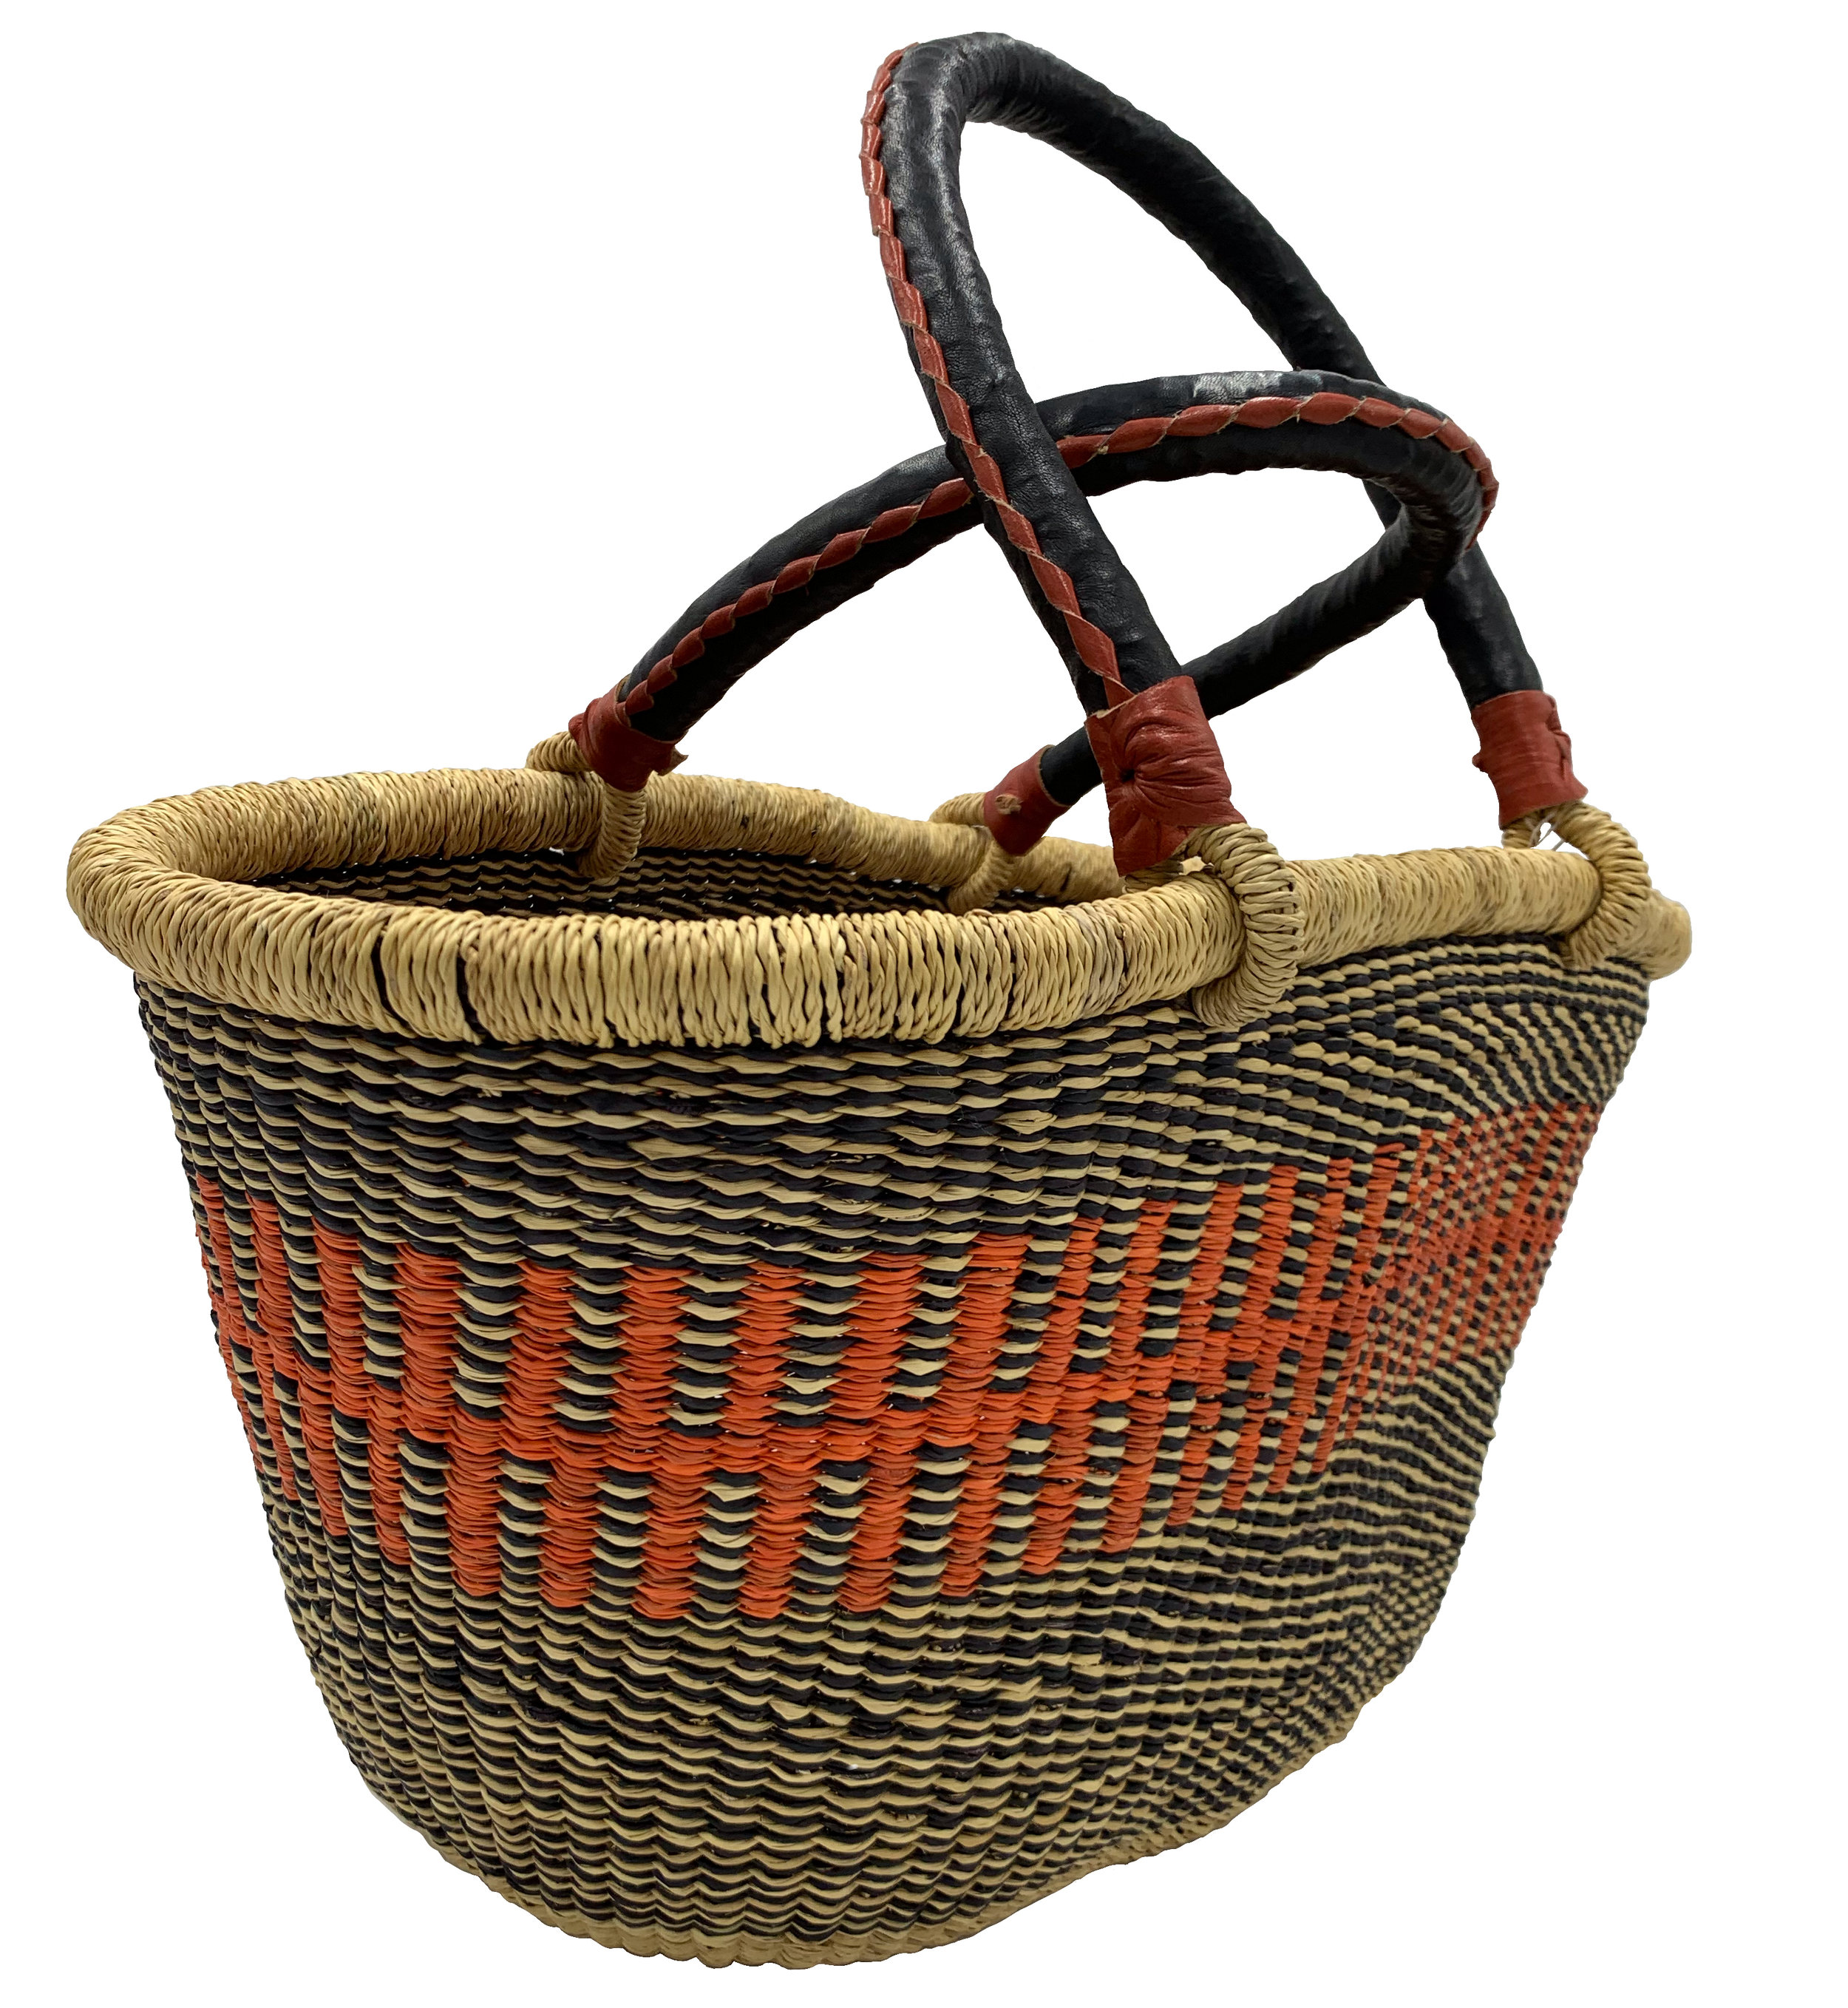 """Medium Oval"" from Baba Tree Baskets"